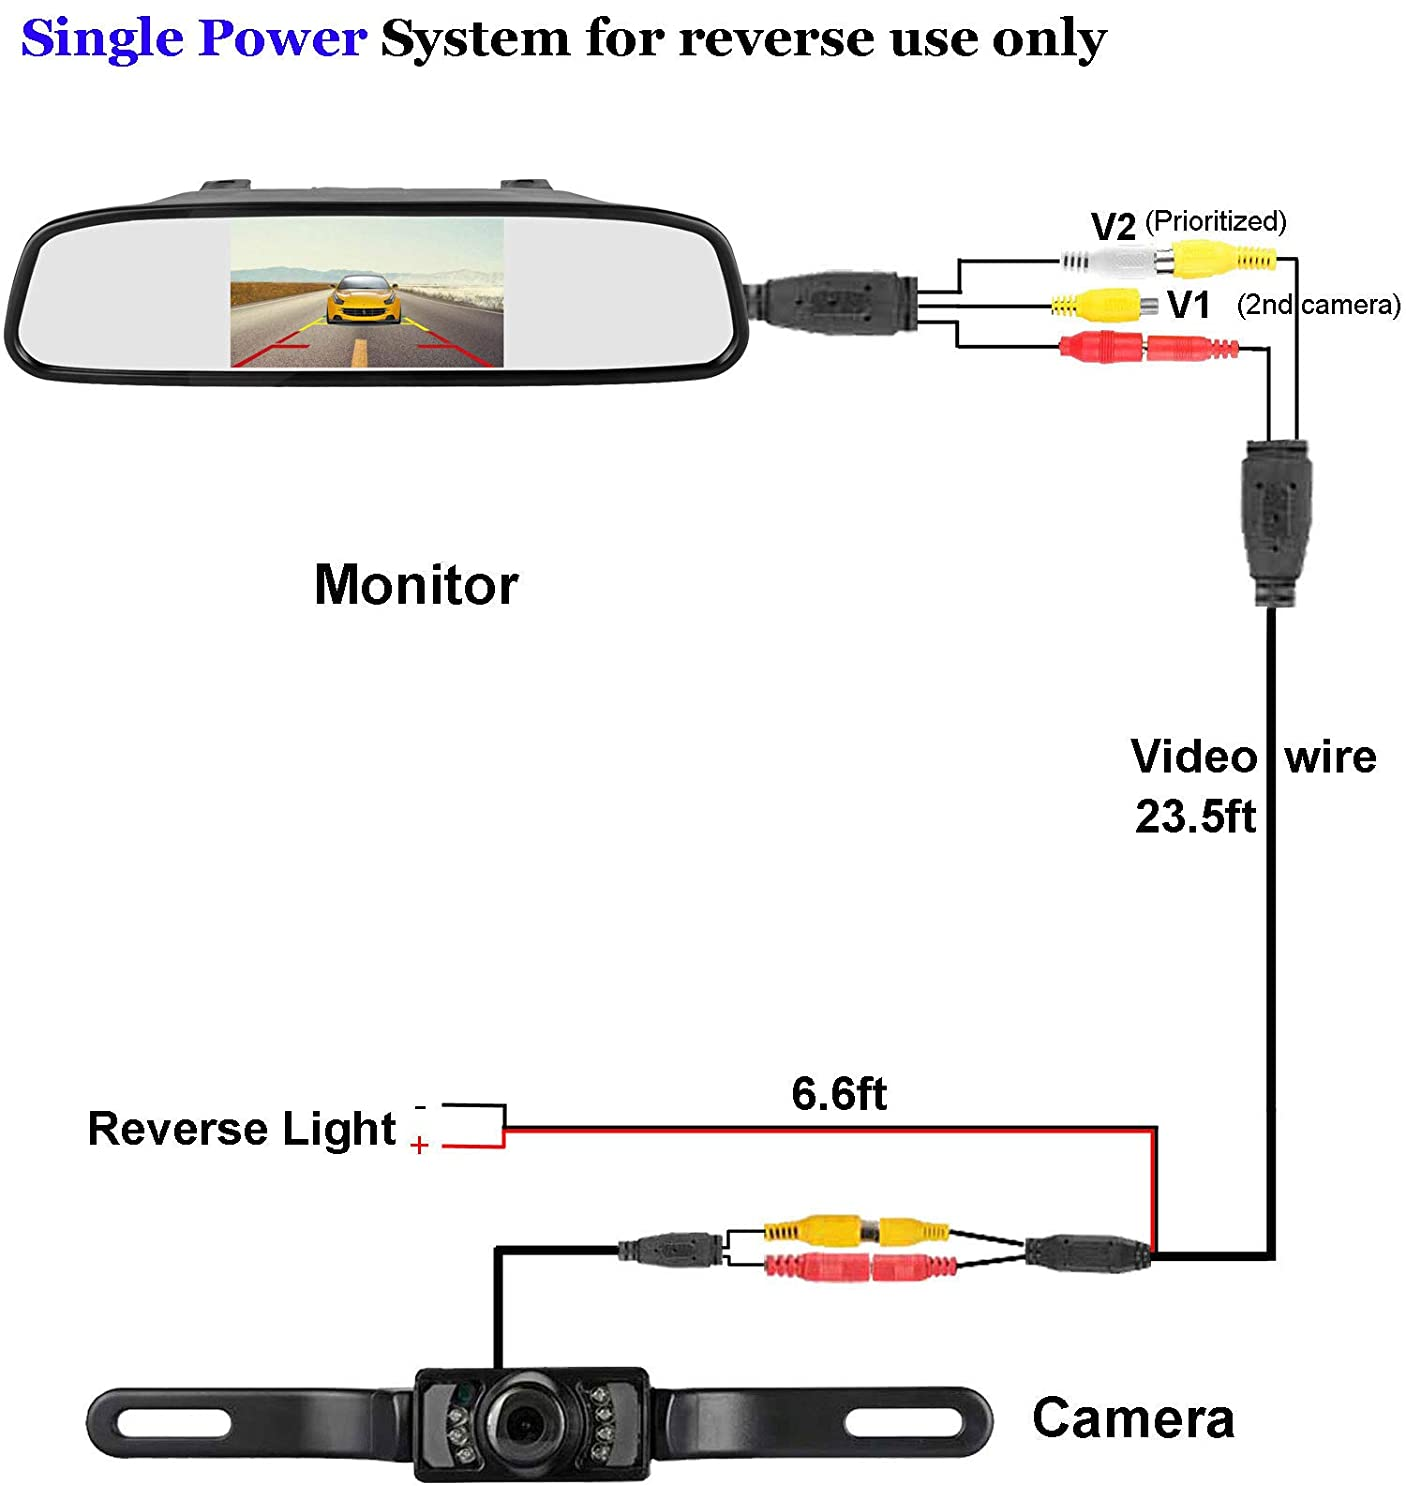 Backup Camera Schematic - Wiring Diagram & Cable Management on